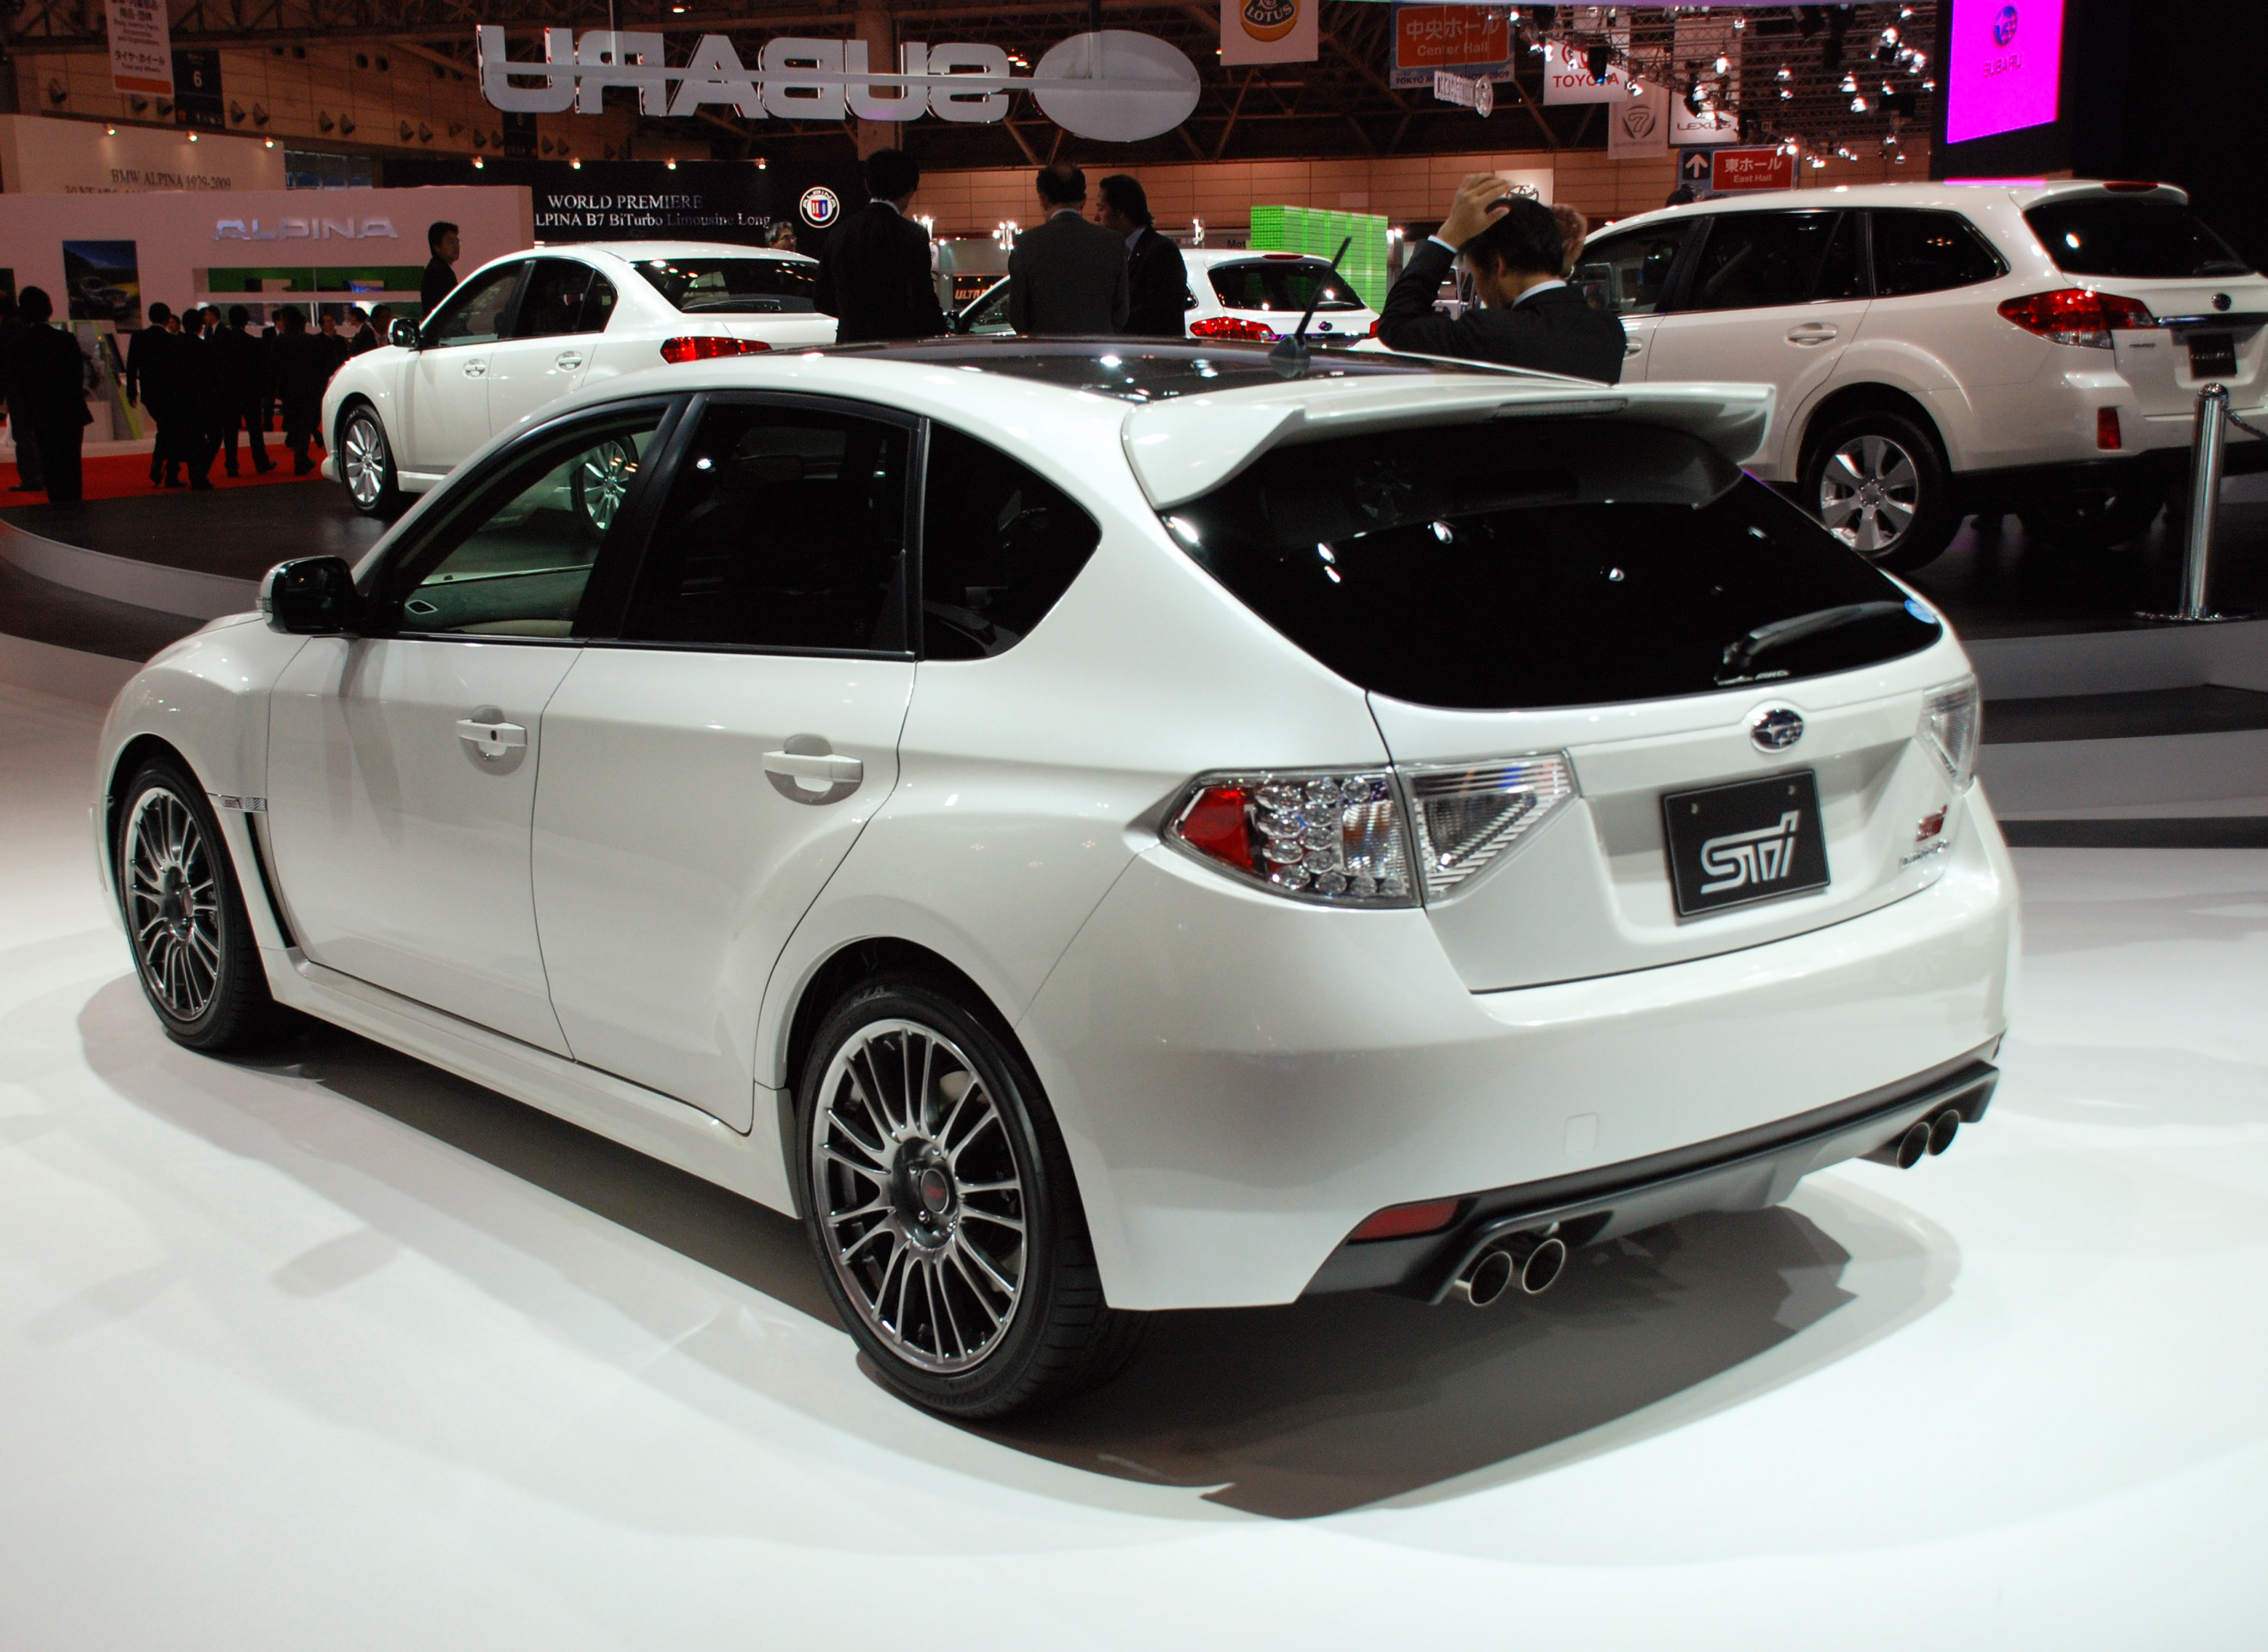 subaru impreza wrx sti carbon at tokyo motor show. Black Bedroom Furniture Sets. Home Design Ideas